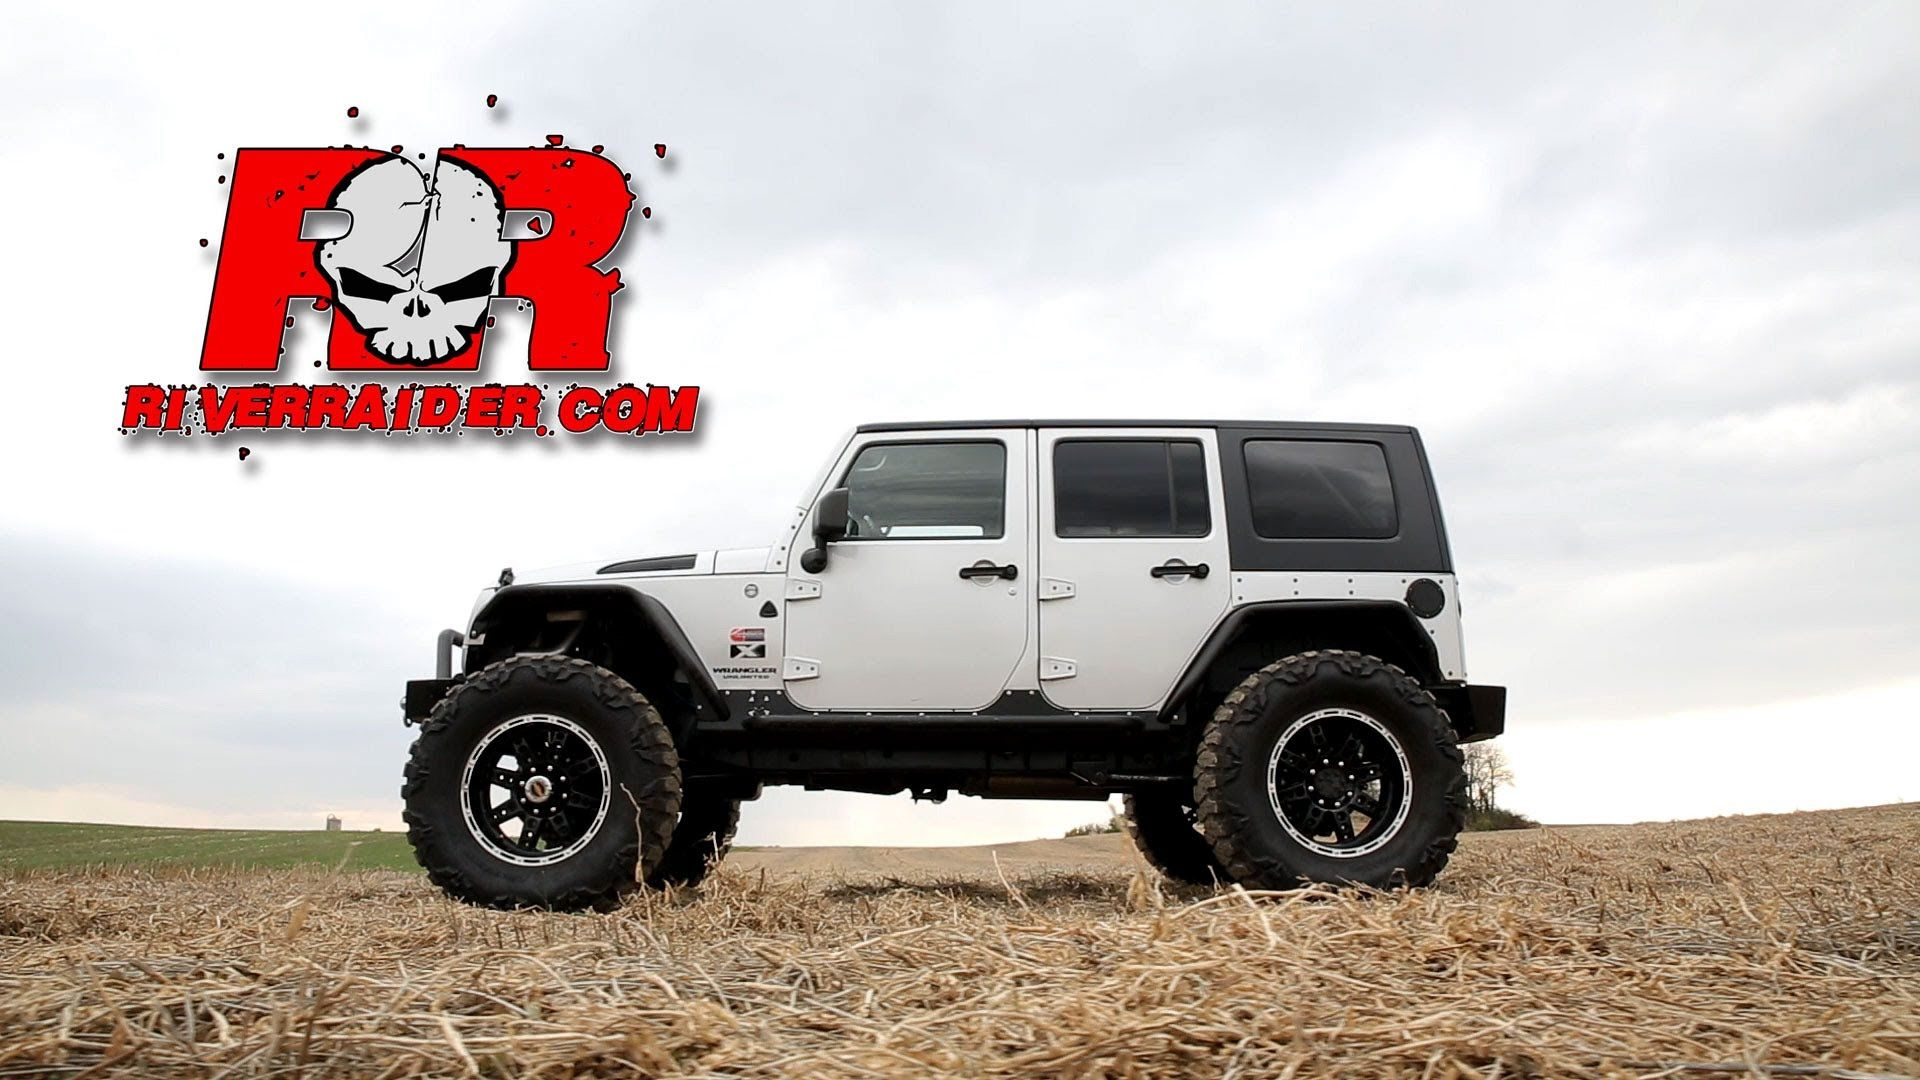 Project torque this jeep is an extreme diesel wrangler that houses a 600 horsepower